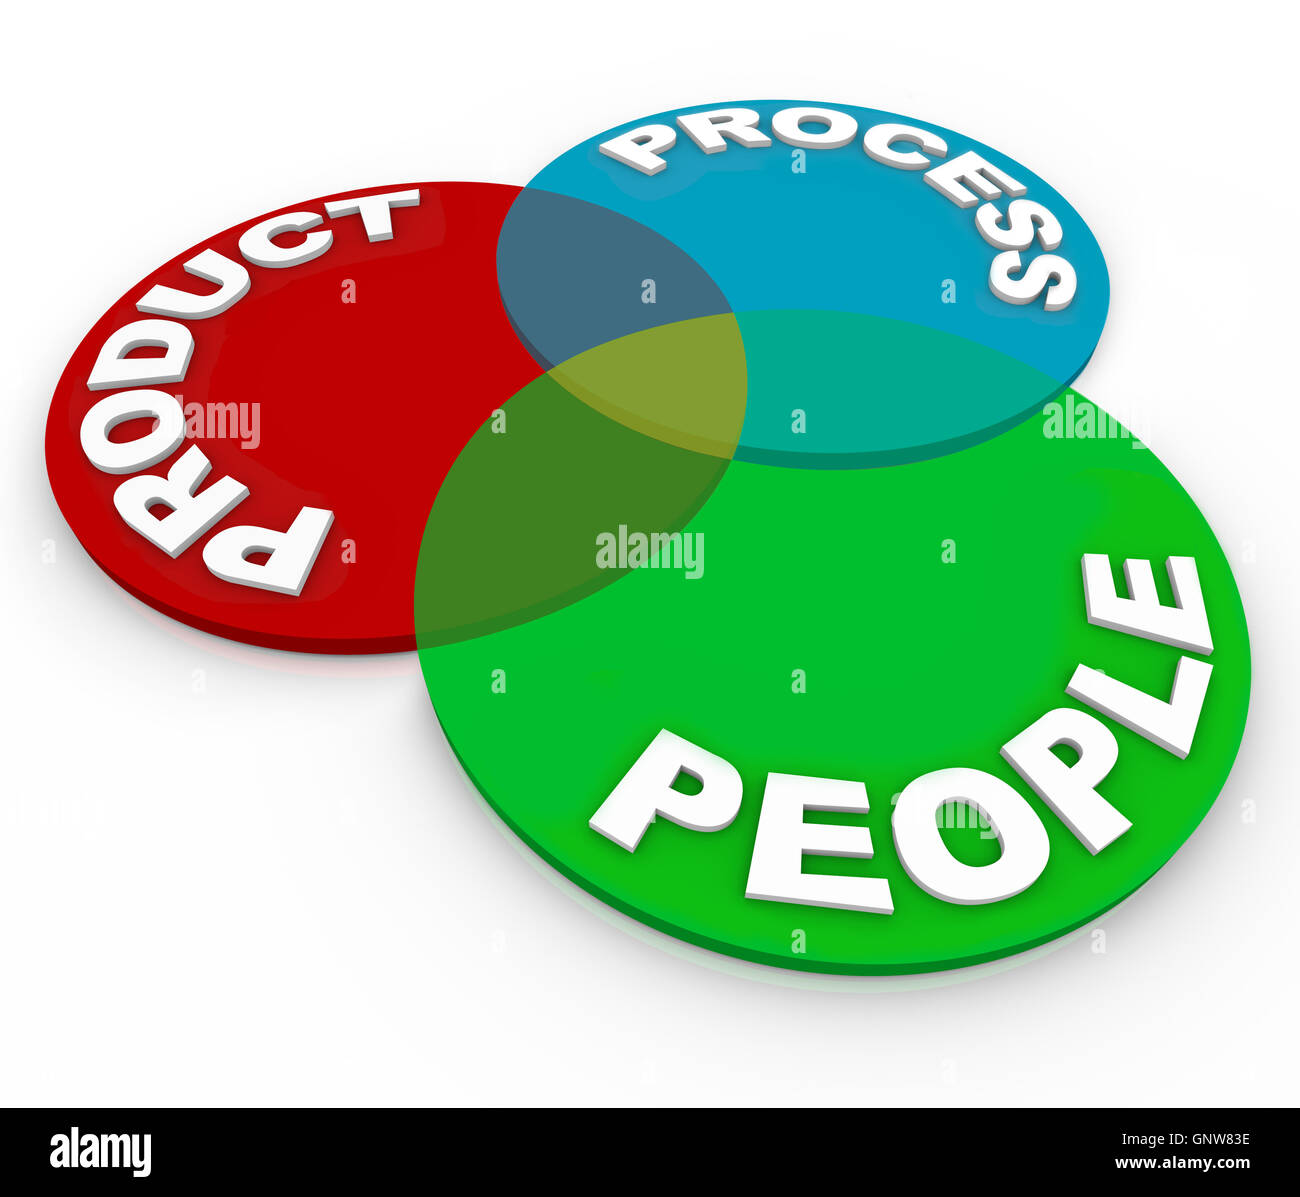 Venn diagram stock photos venn diagram stock images alamy product lifecycle planning venn diagram people process stock image ccuart Gallery